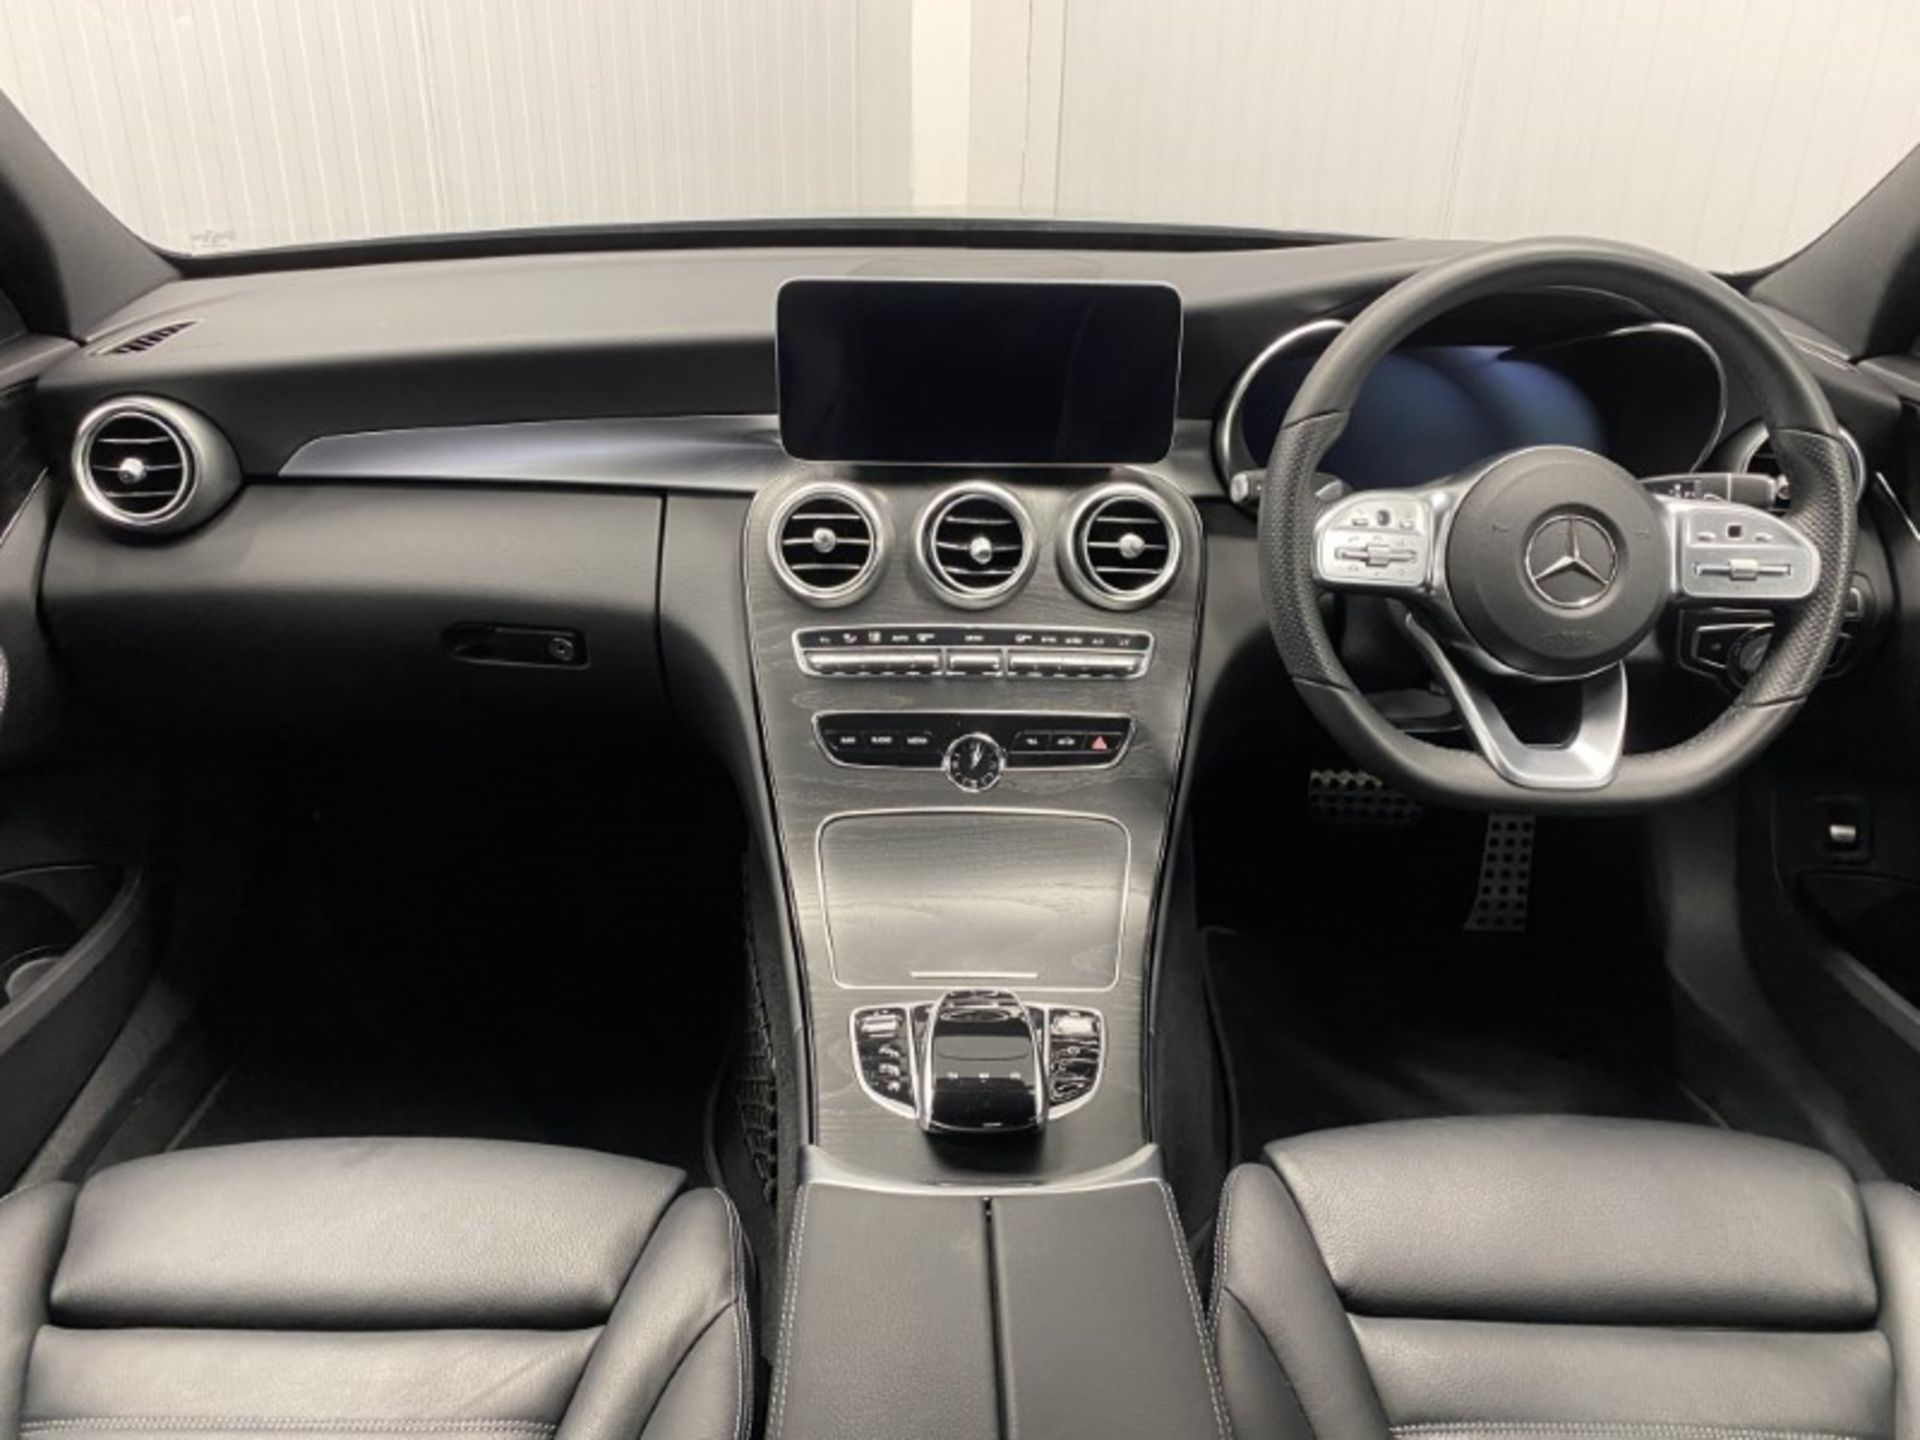 MERCEDES-BENZ C220d *AMG LINE - PREMIUM* SALOON (2021 MODEL) '9-G TRONIC' *LEATHER & NAV* (1 OWNER) - Image 6 of 7